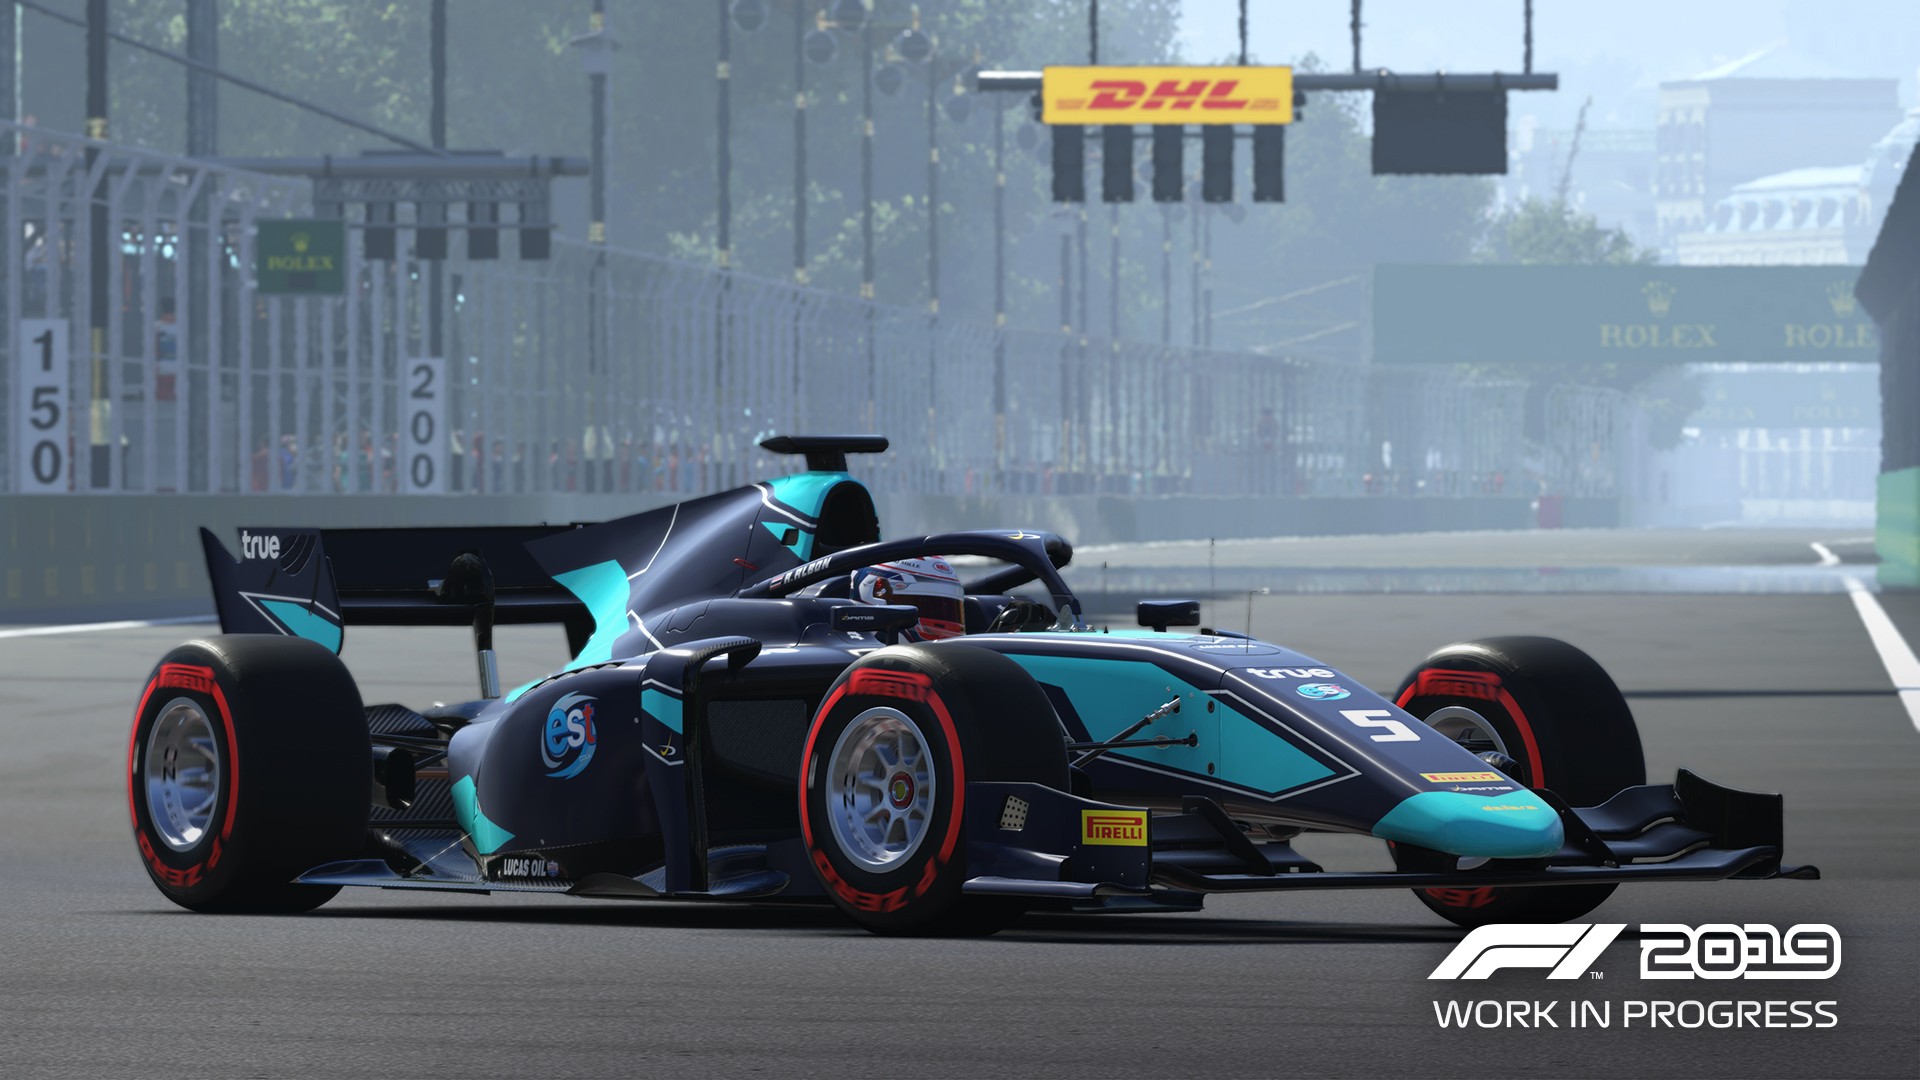 F1 2019 is Codemasters' Most Authentic Formula 1 Game Yet